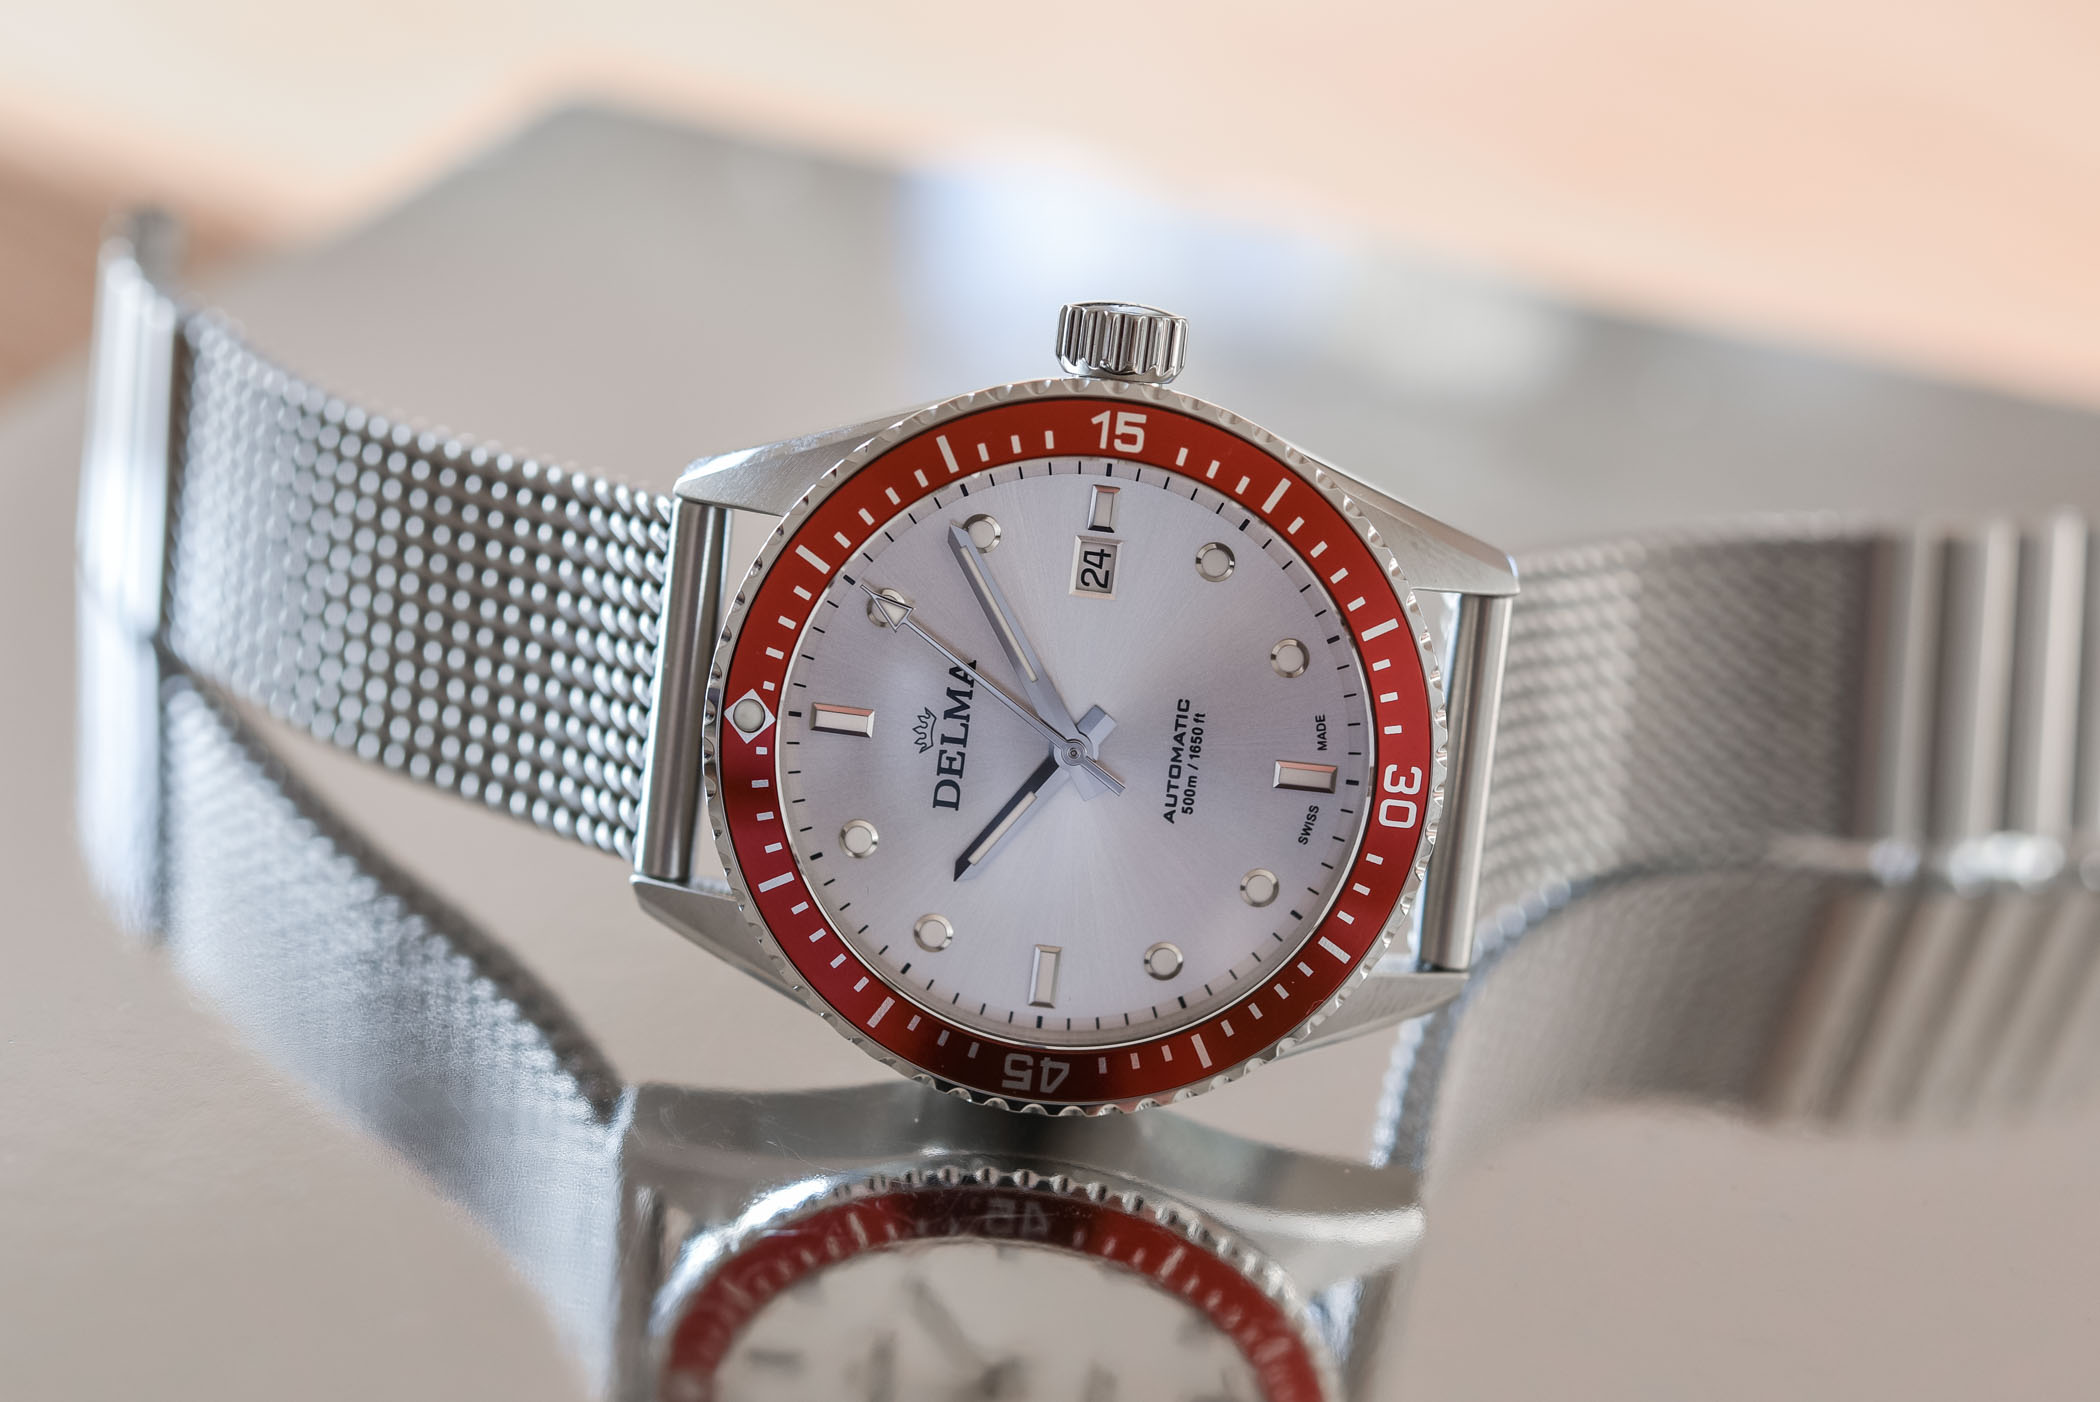 Delma Cayman Automatic Dive Watch - Value Proposition